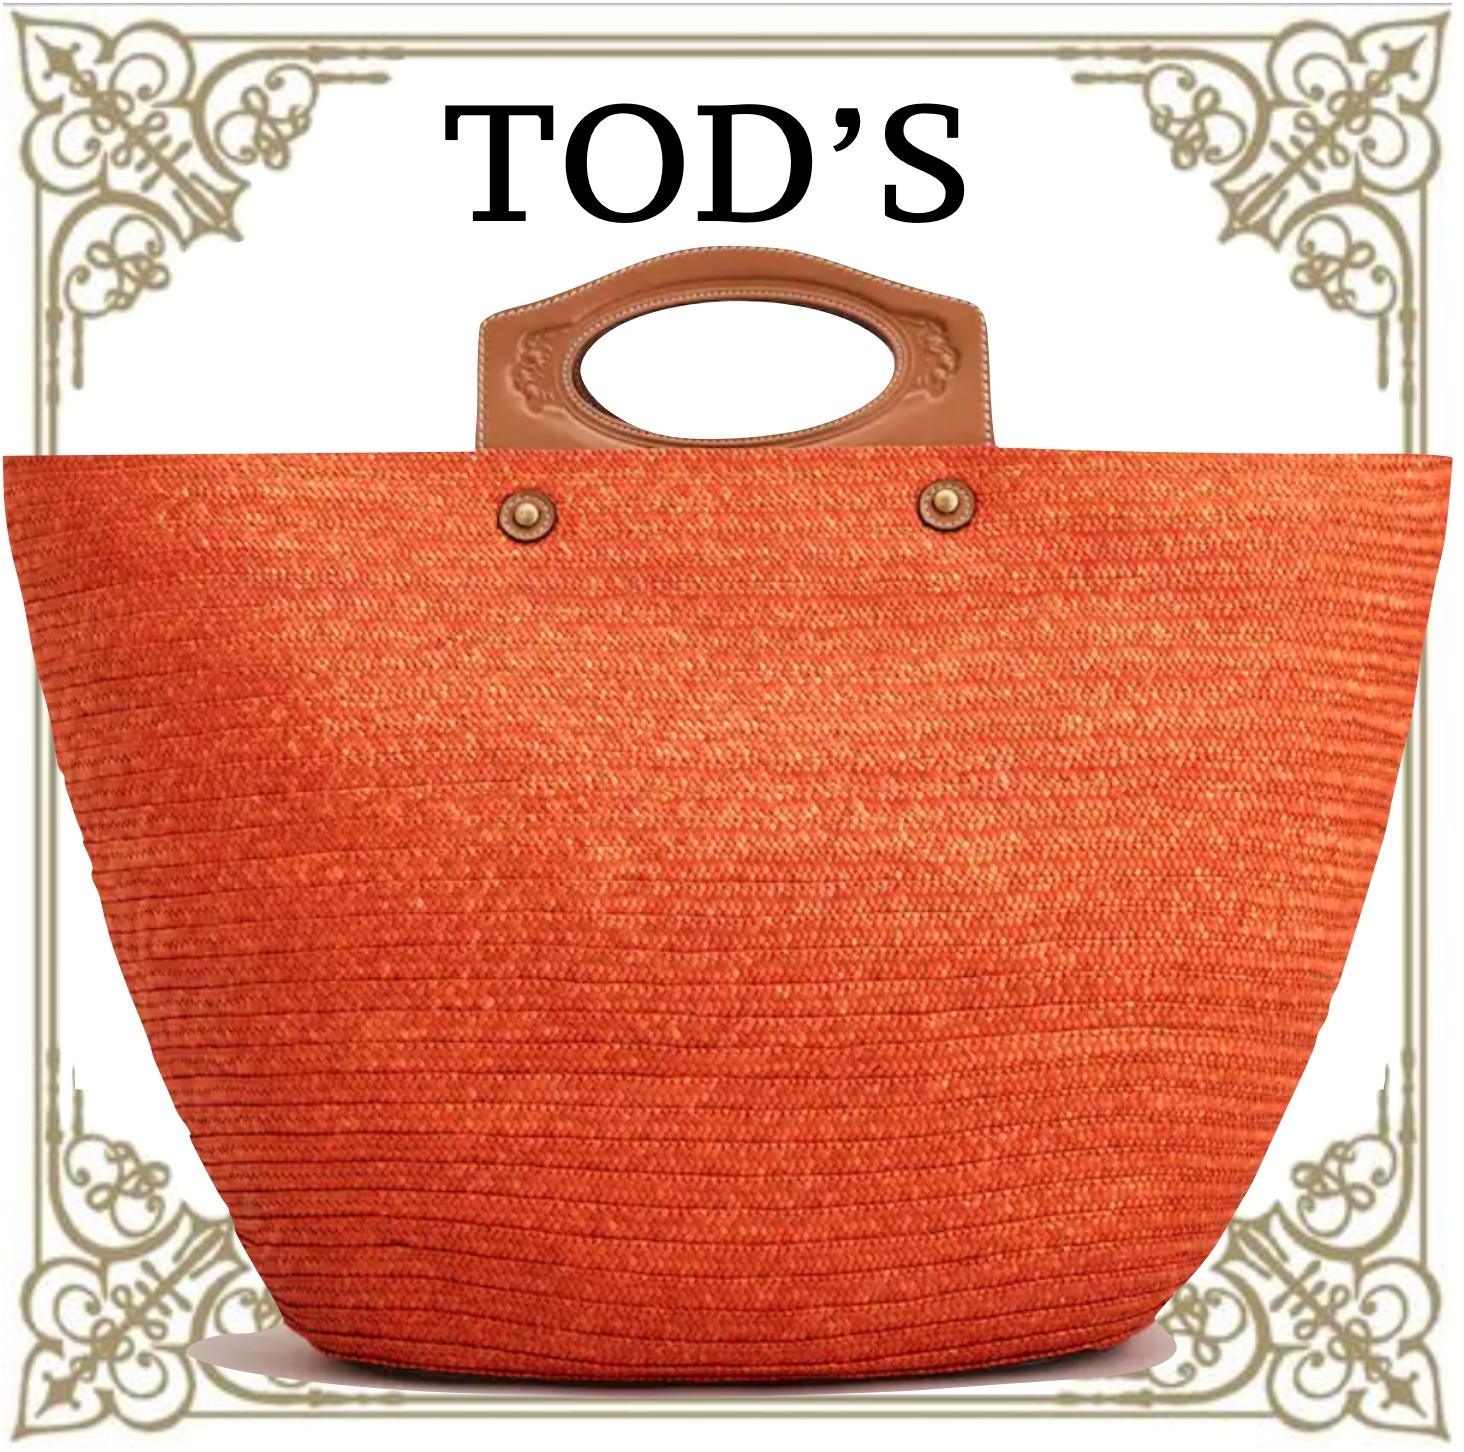 TOD'S STRAW AND LEATHER BAG LARGE 直営店買付 関税込み (TOD'S/かごバッグ) 65842098